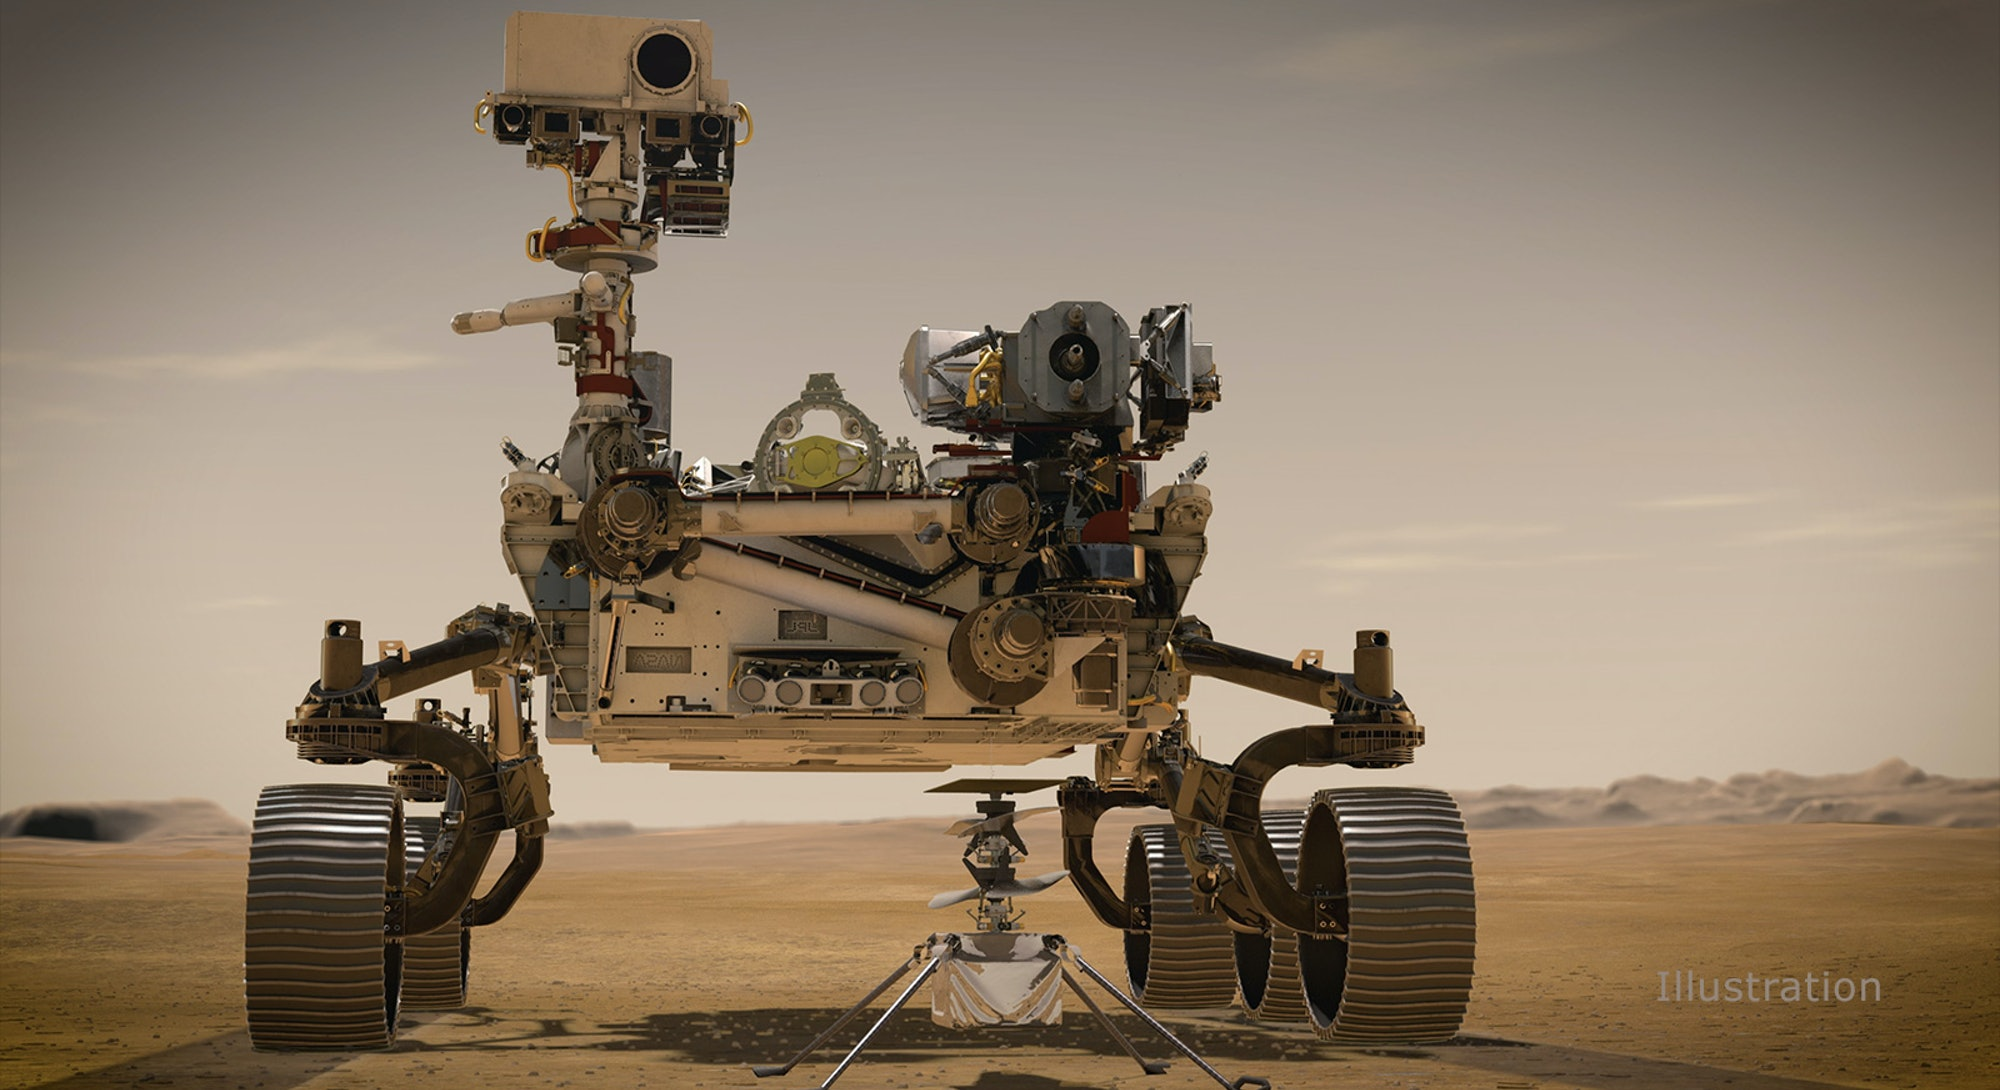 An illustration of the Perseverance rover on the surface of Mars.